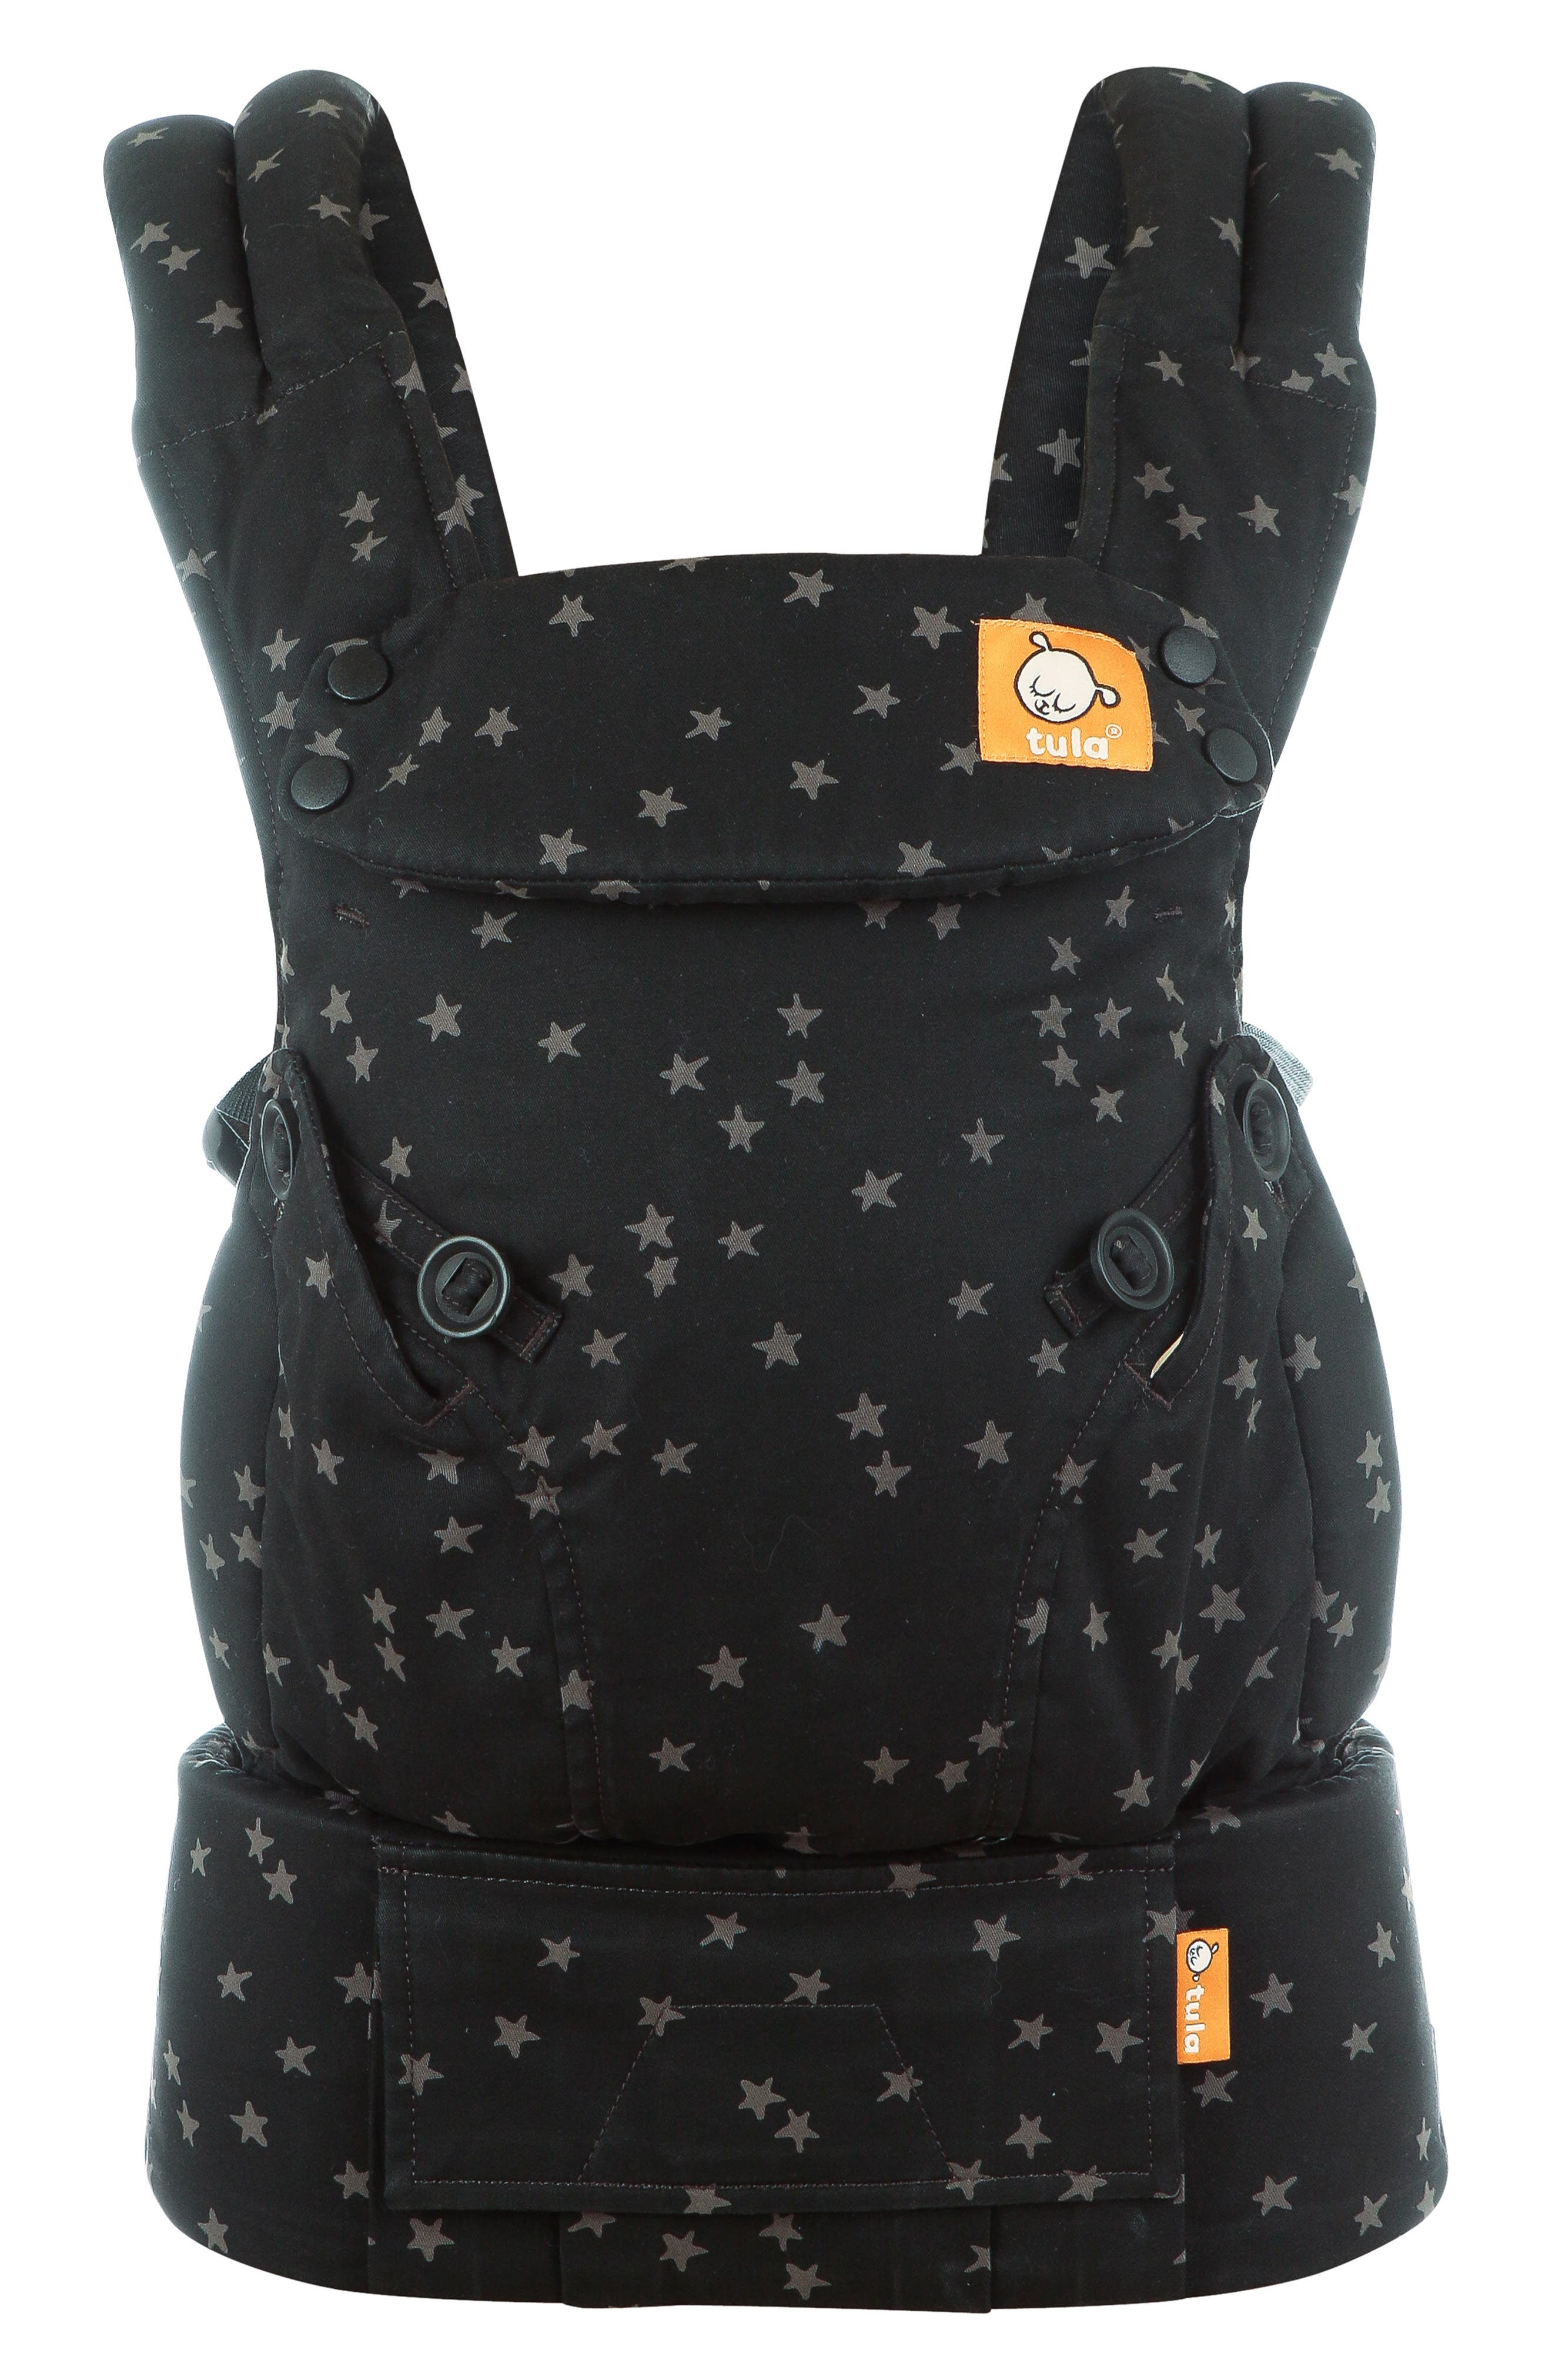 Infant Baby Tula Explore Frontback Baby Carrier Size One Size  Black